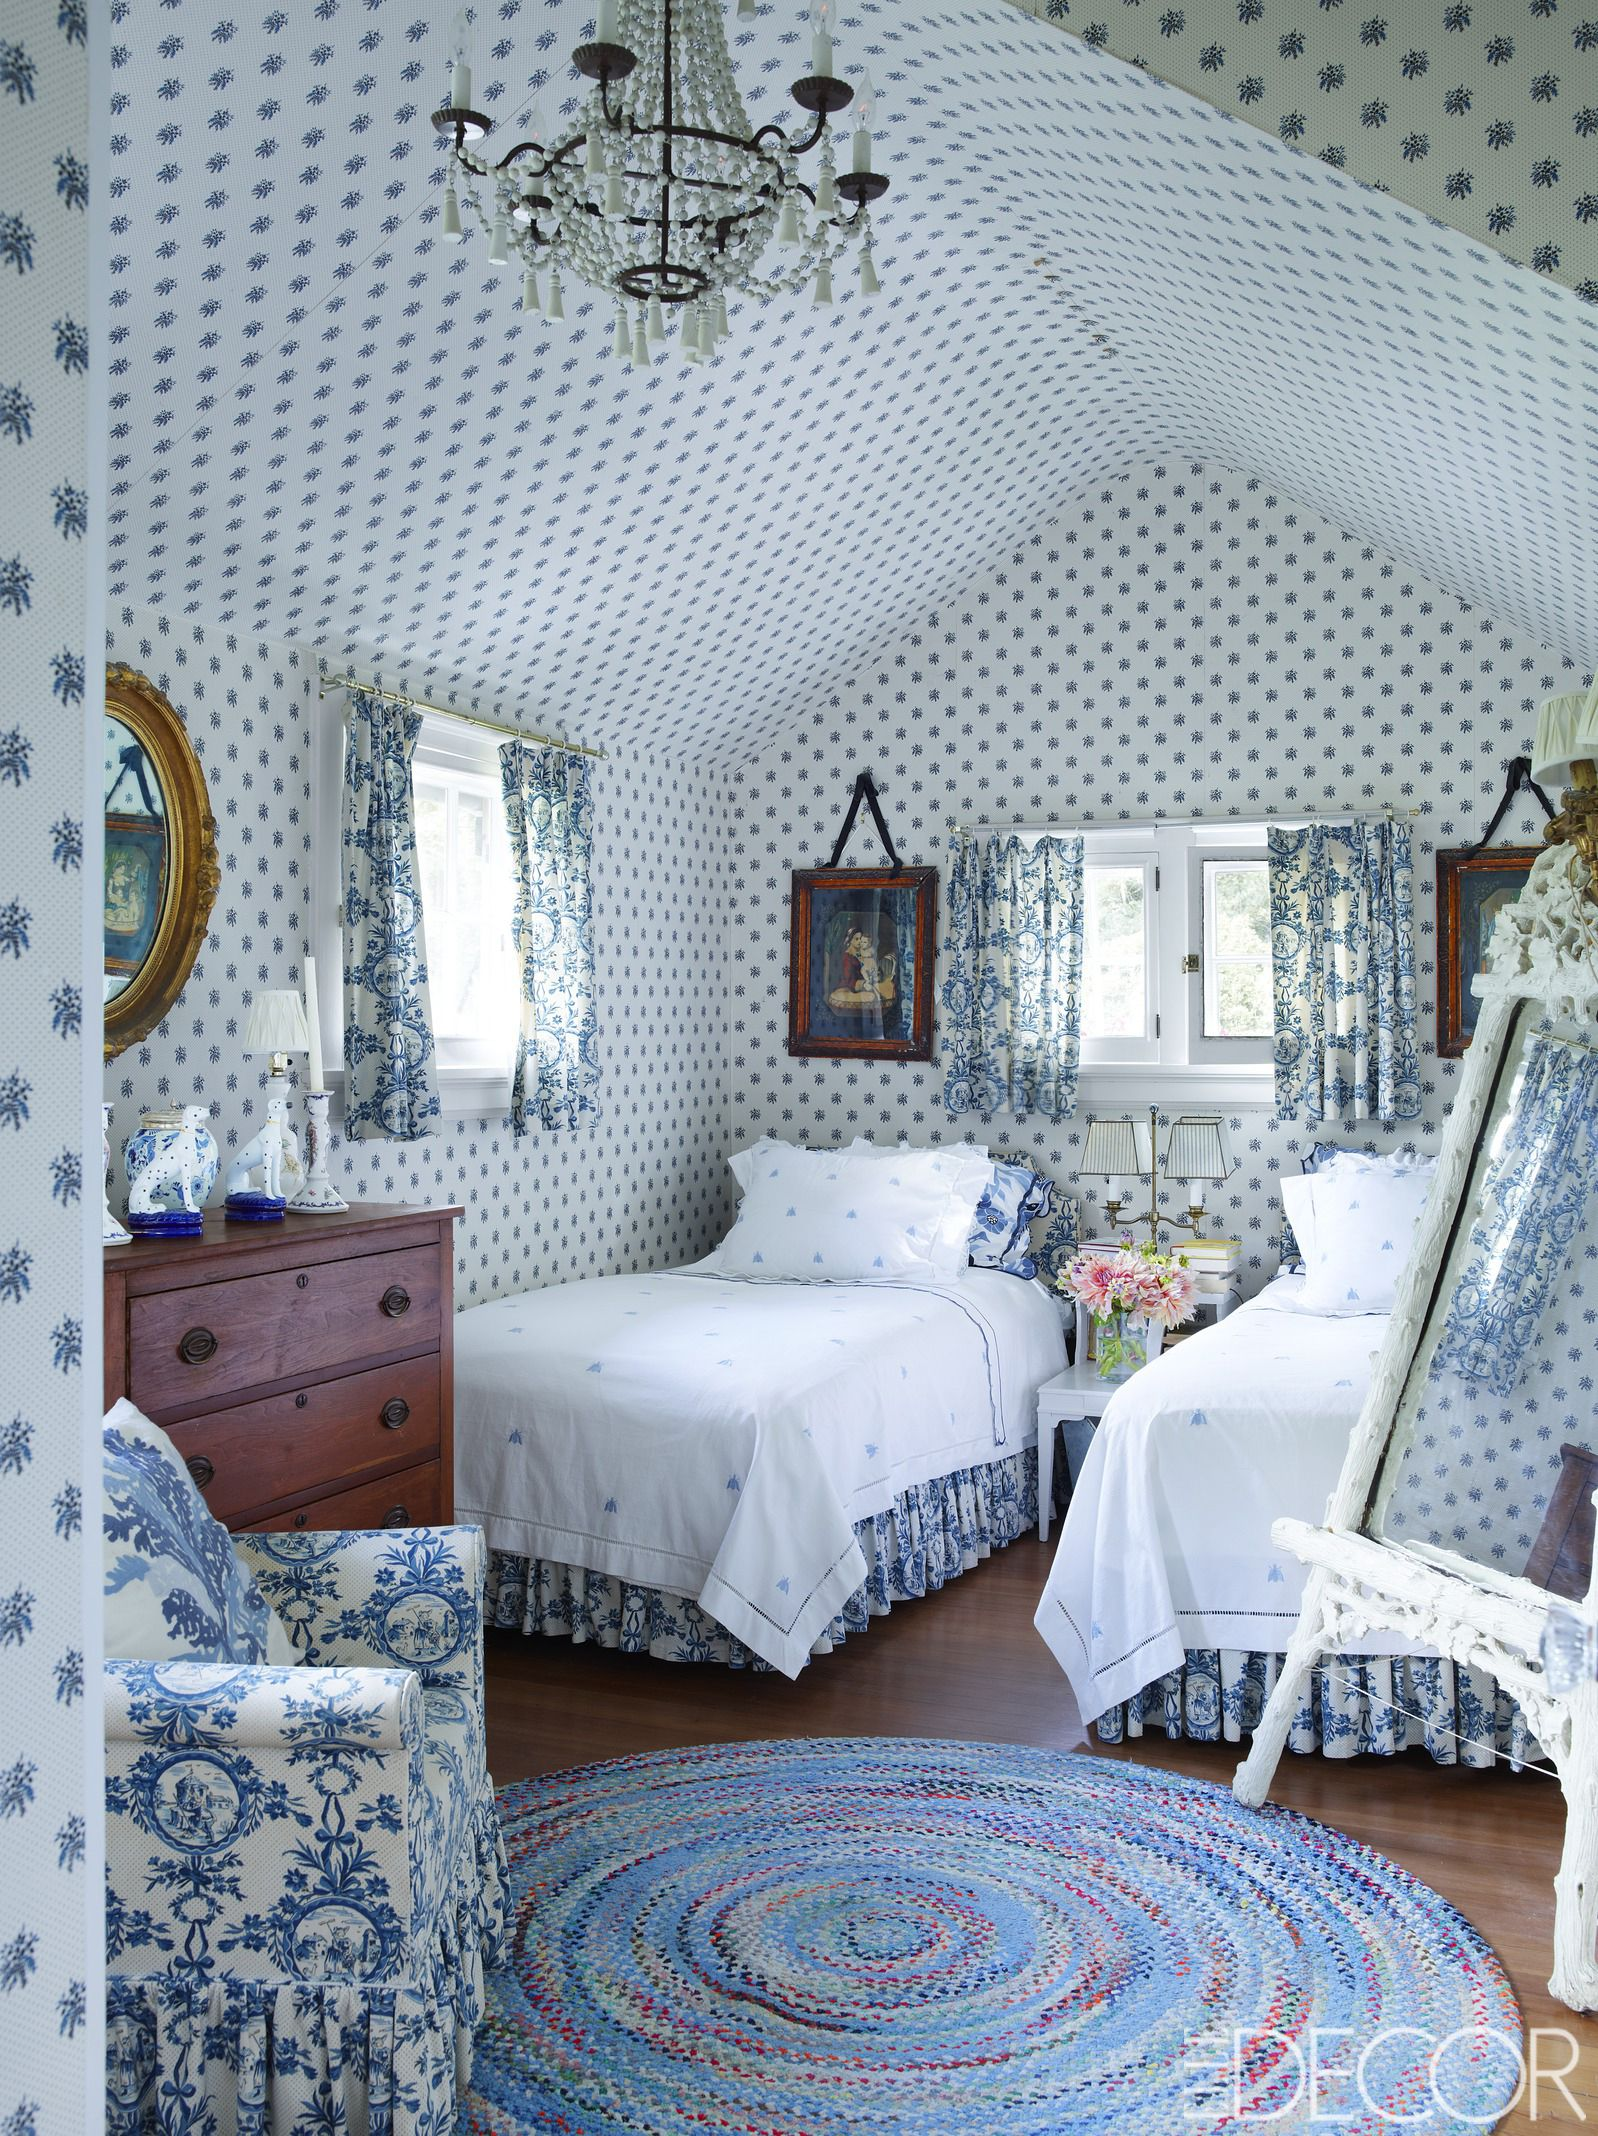 Fabulous Chambray Blue & White Cottage Bedroom ❤❤❤